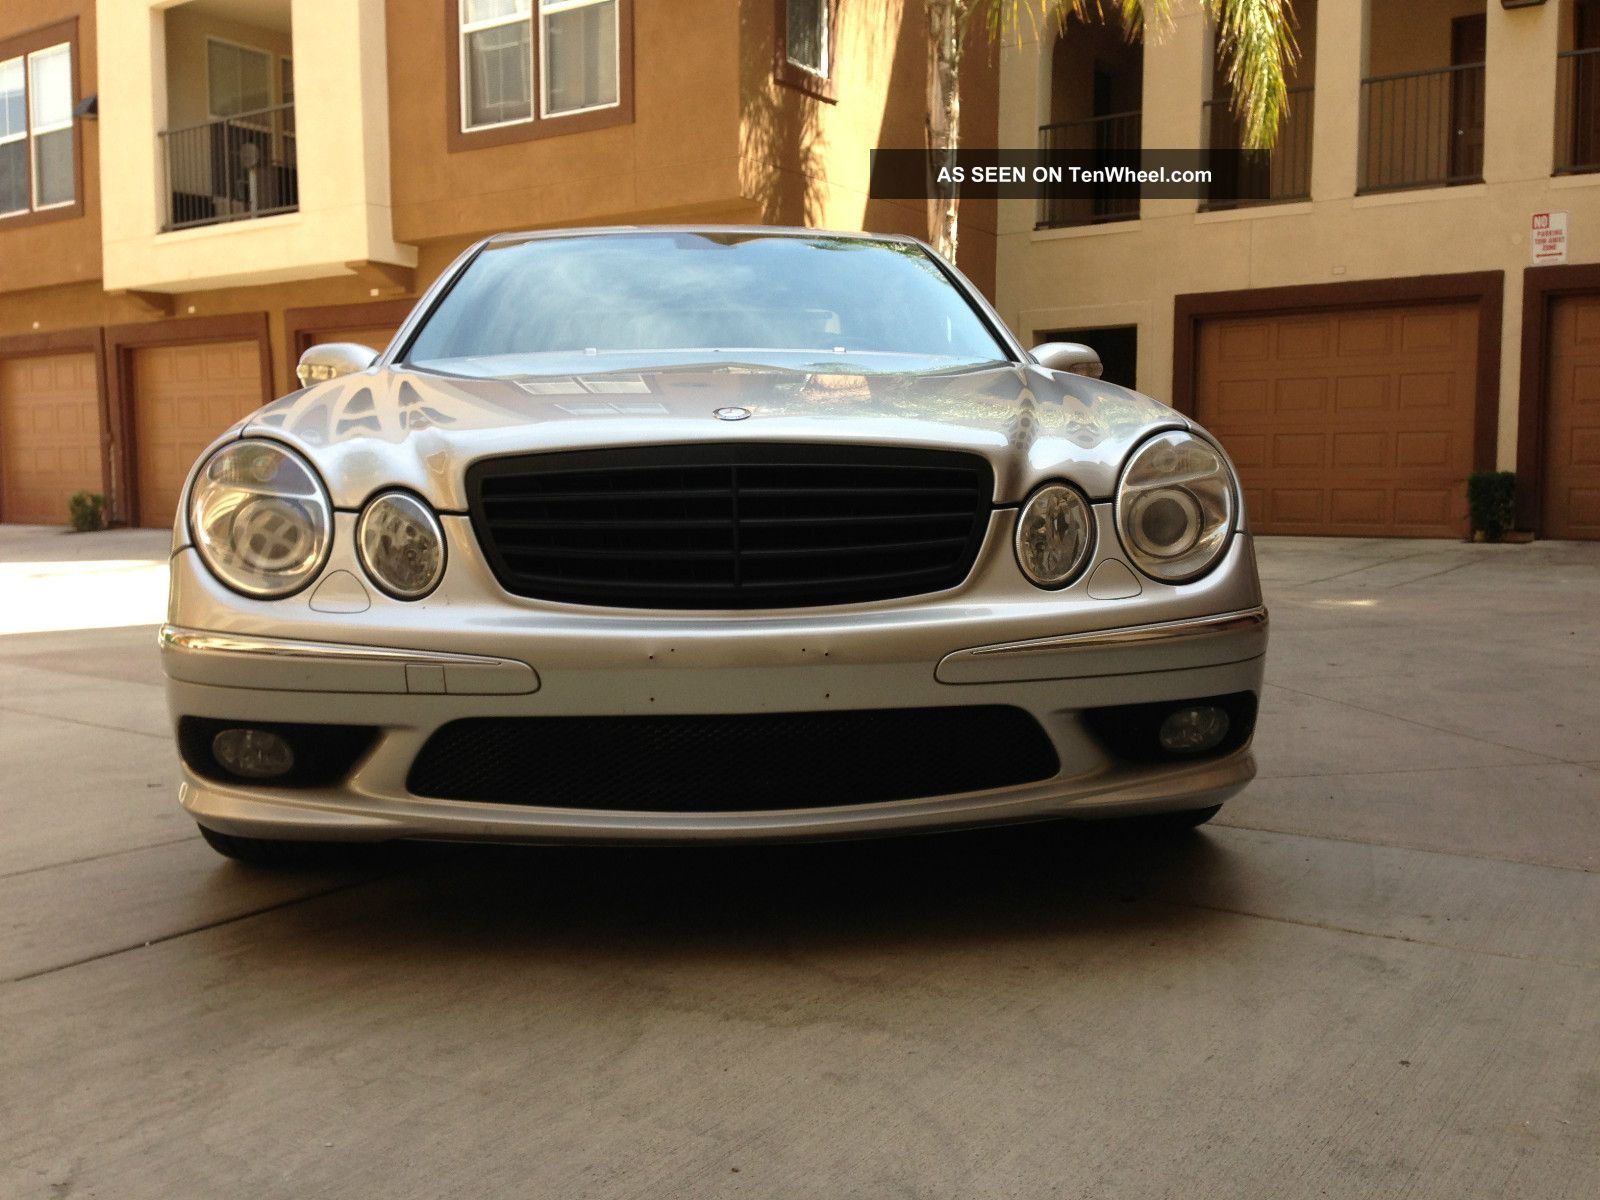 2005 mercedes benz e55 amg full options rare for 2005 mercedes benz e55 amg